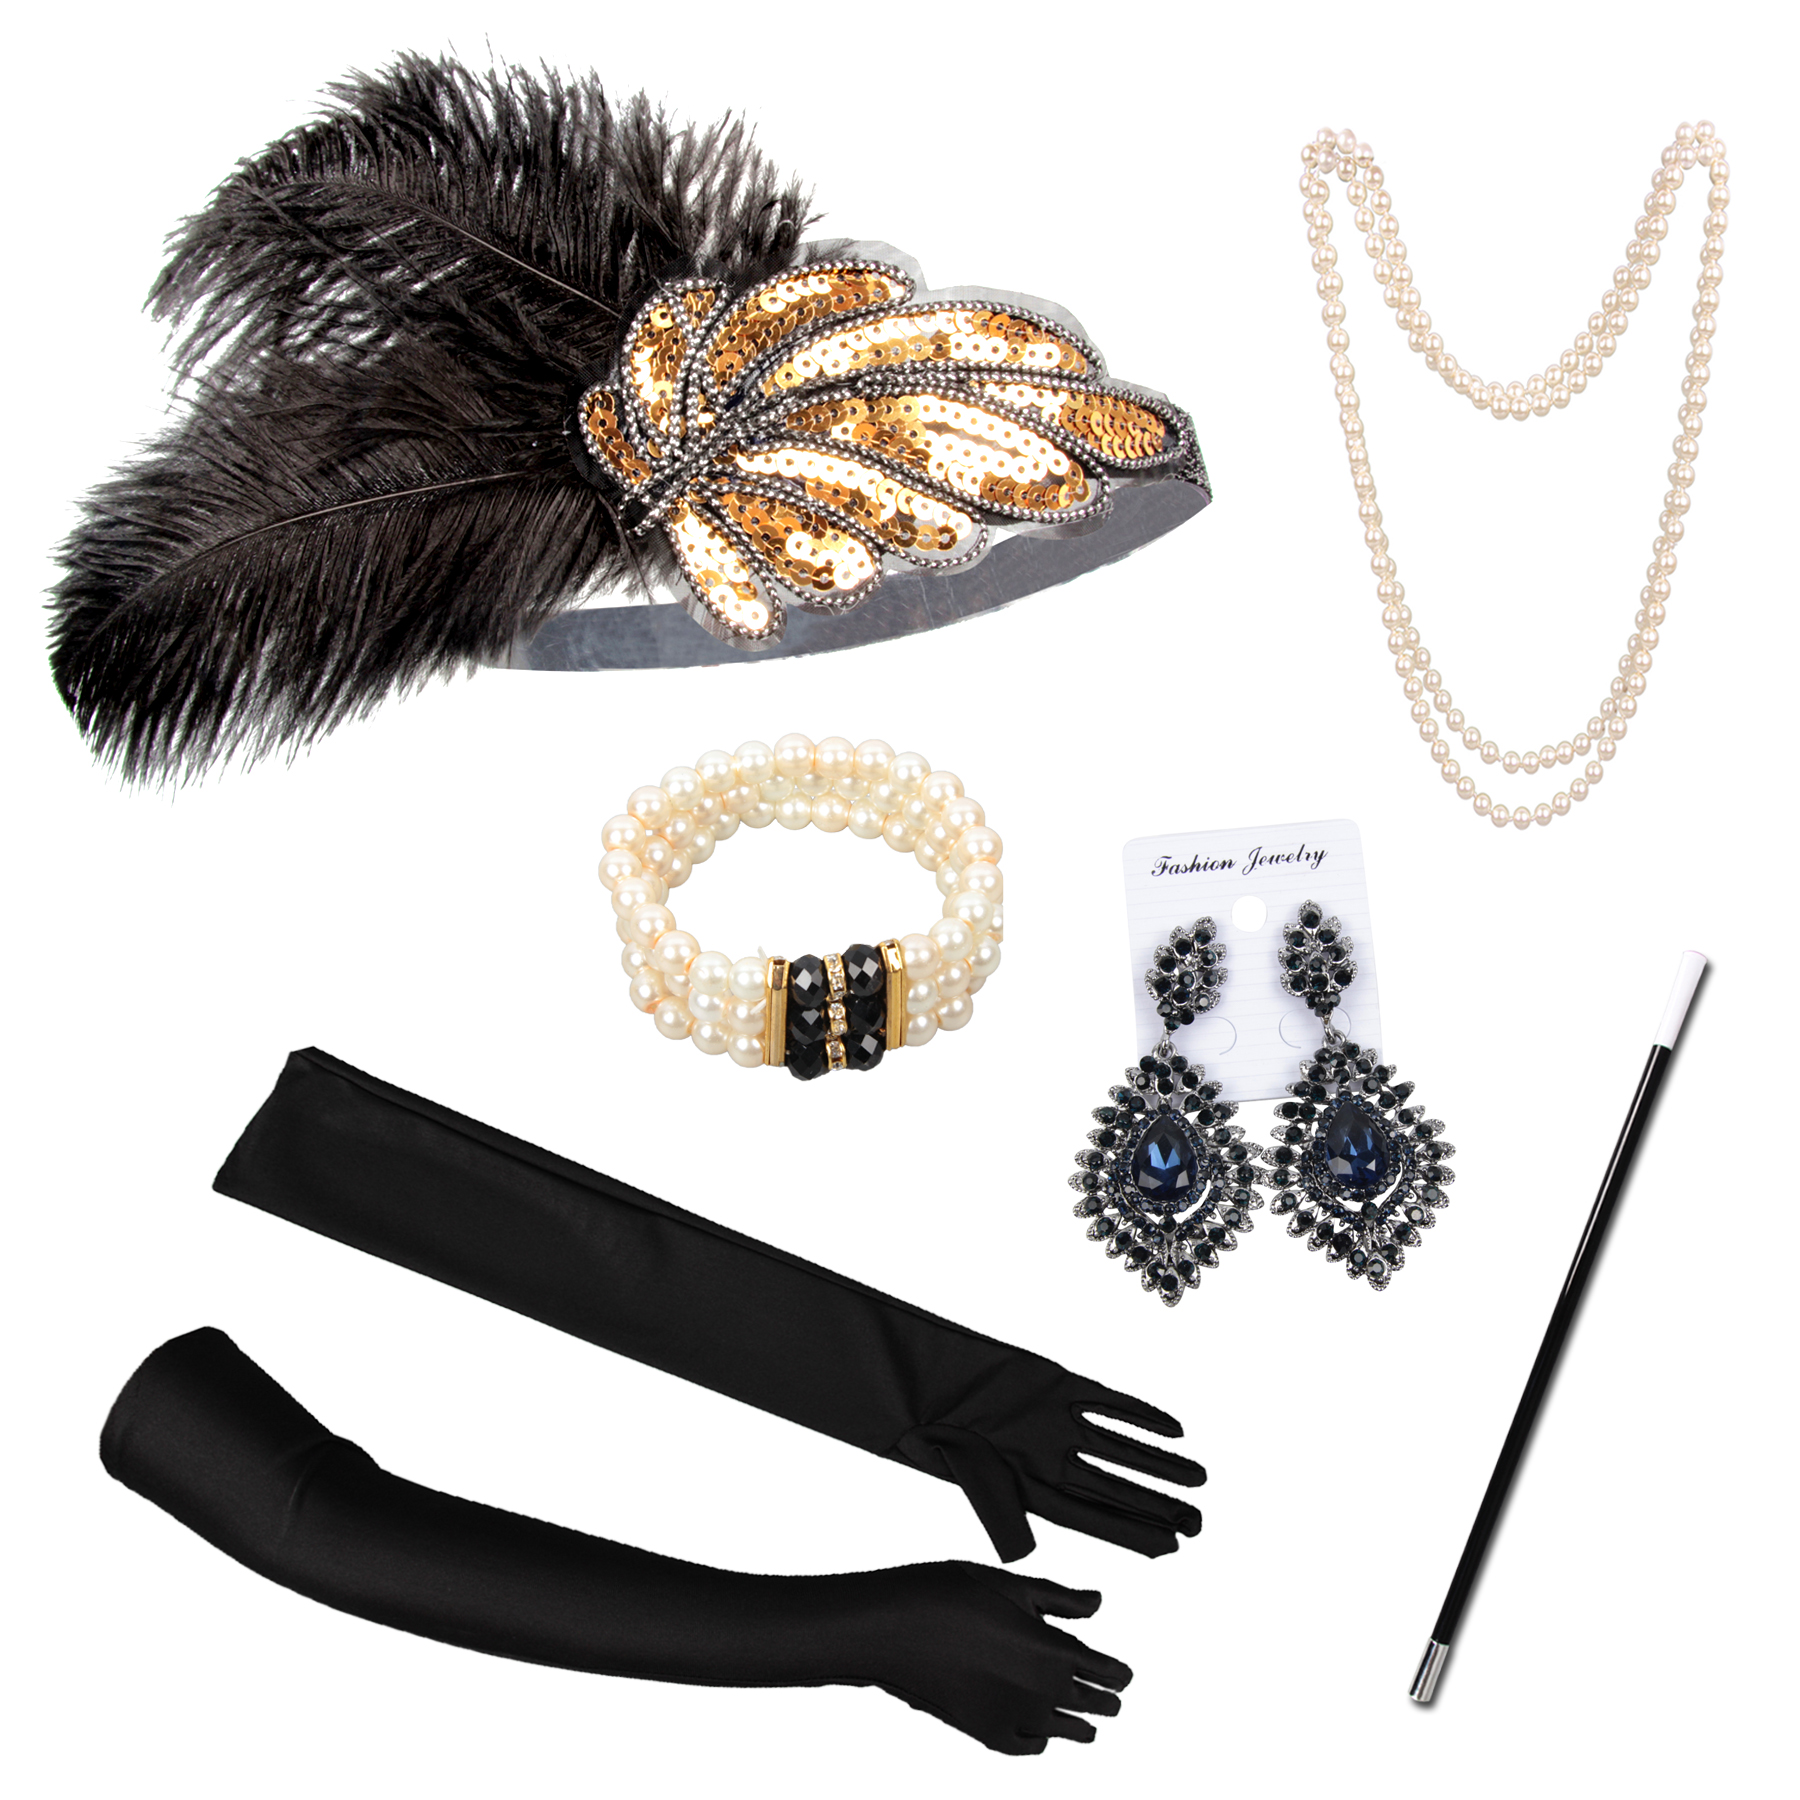 Gatsby Wedding Accessories Set With Jewelry Cigarette Holders For Women Factory Sales Handmade